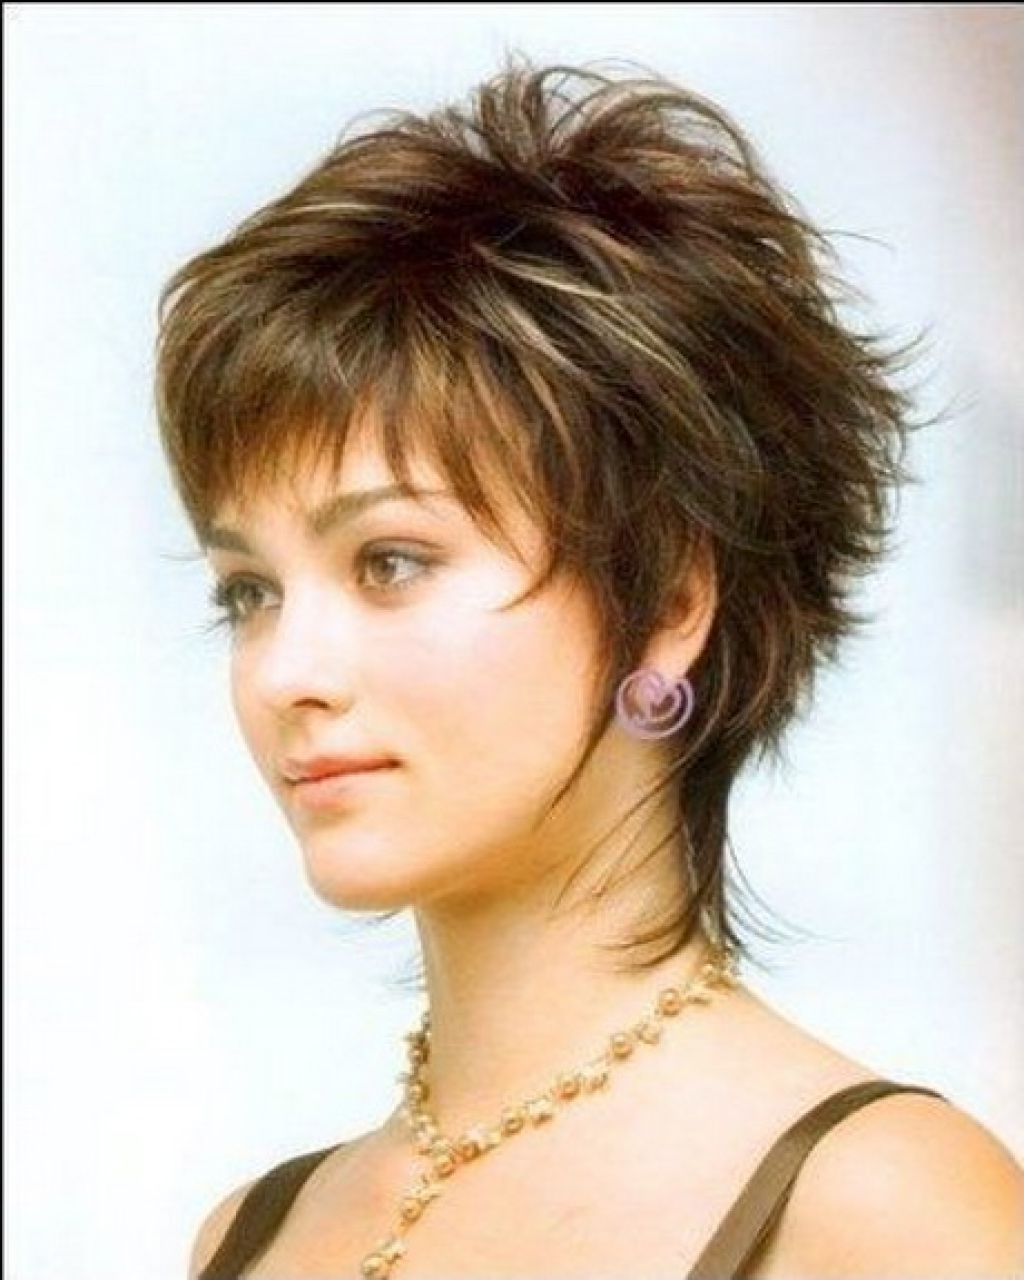 Well Liked Shaggy Short Hairstyles For Round Faces Regarding Medium Shaggy Hairstyles For Women Over Short Shaggy Hairstyles (View 7 of 15)